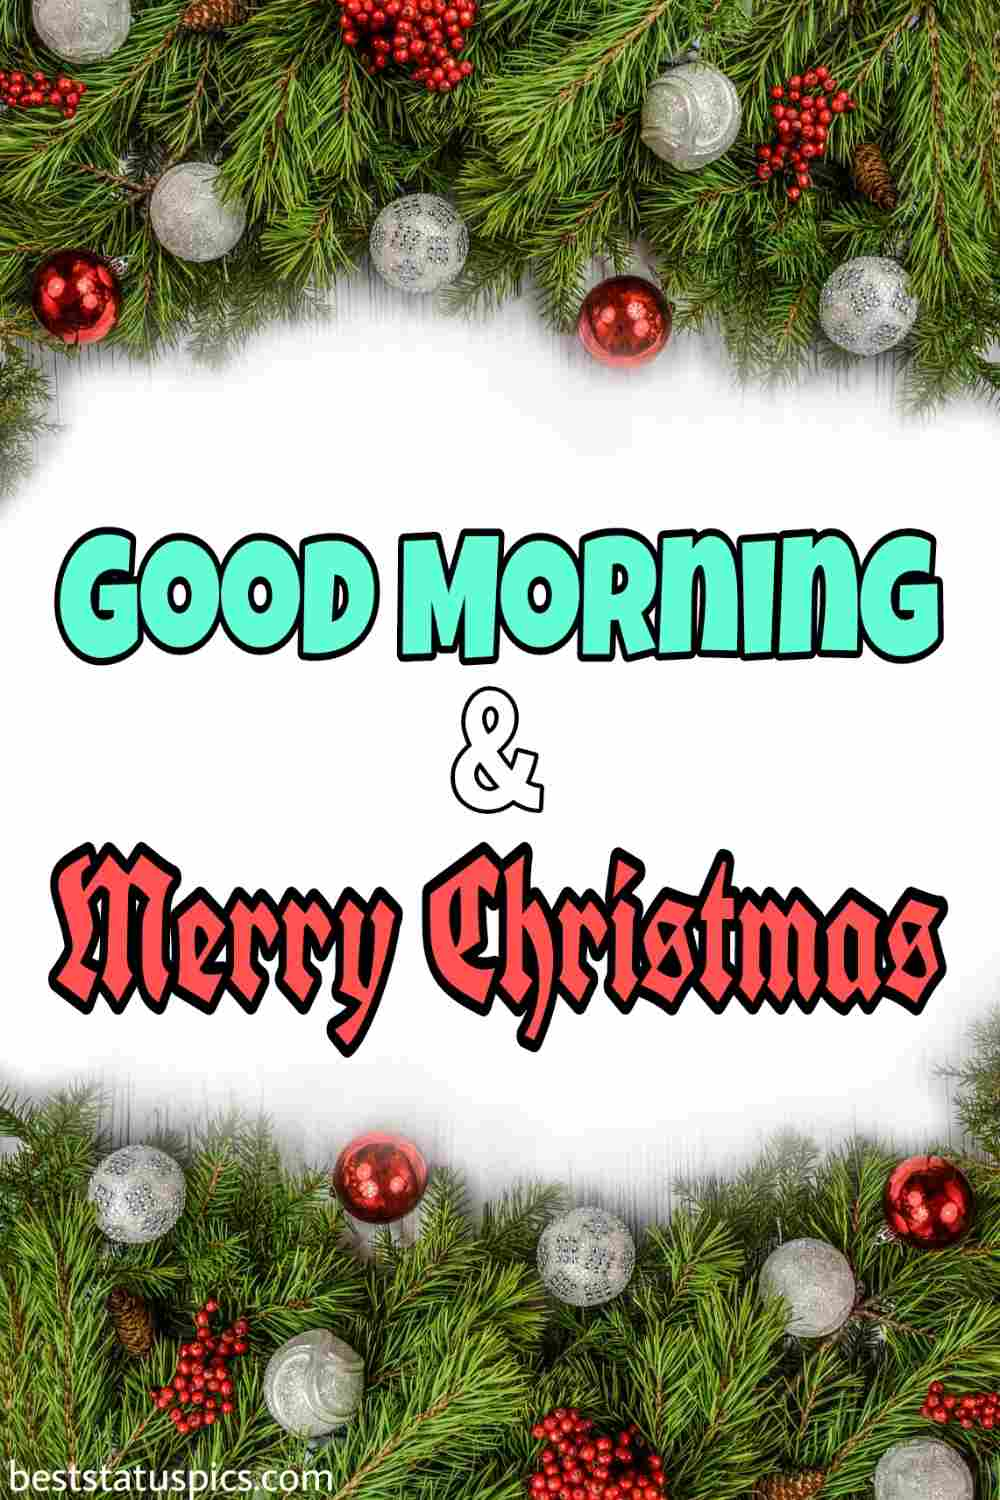 Good Morning Merry Christmas 2022 greeting cards for friends